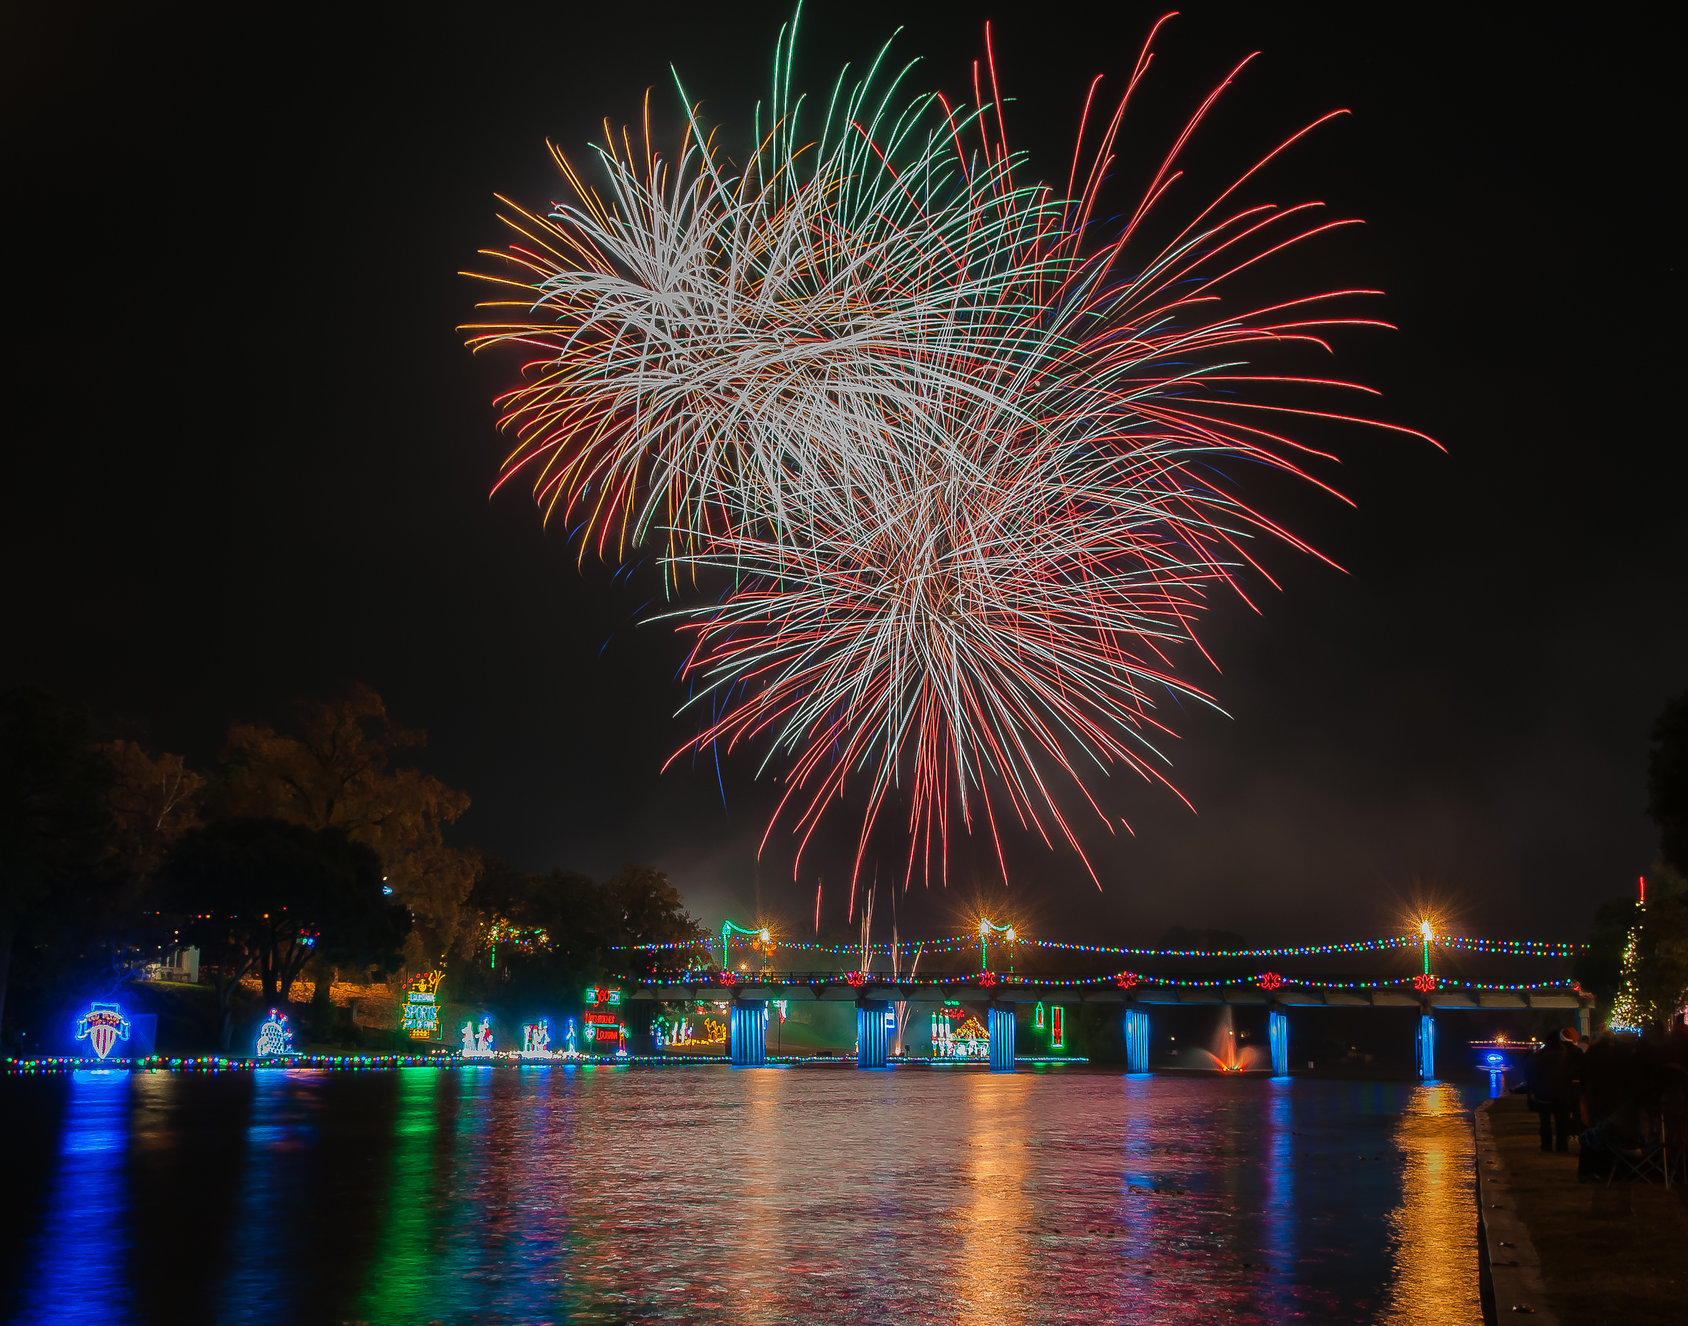 The Best Fireworks Displays In Louisiana In 2016 Cities